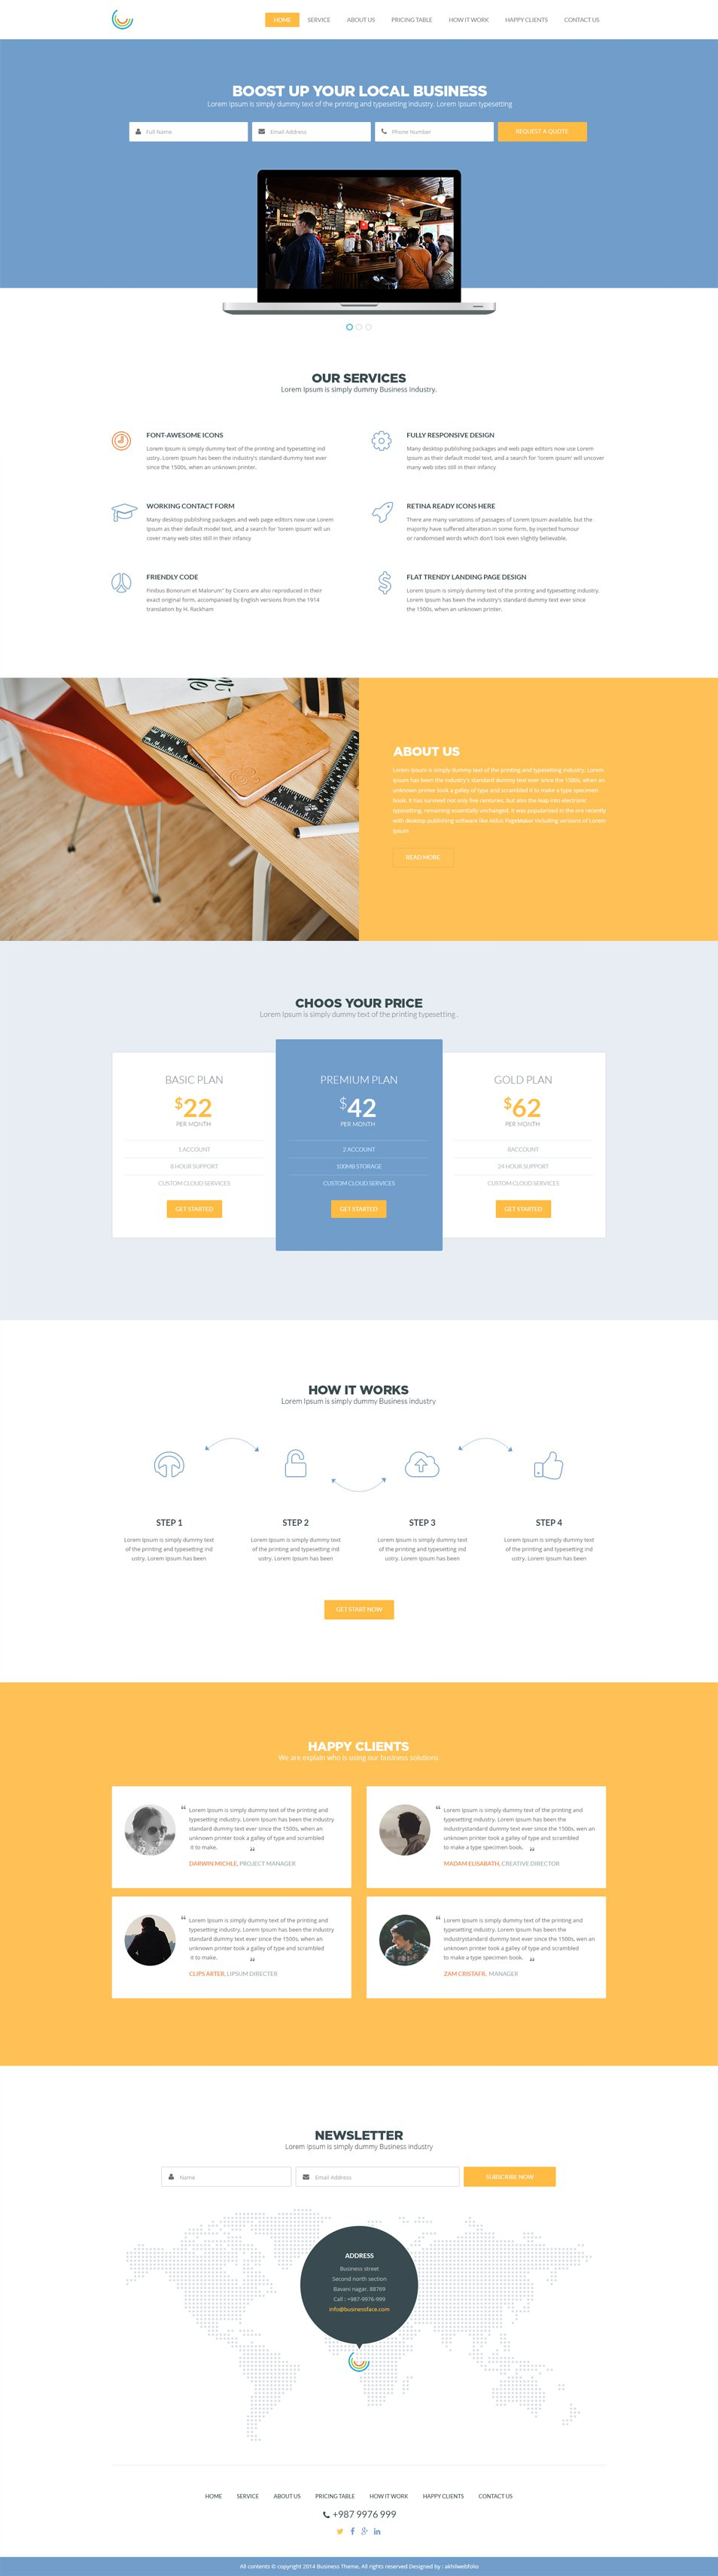 Business templates cssauthor website template psd business web template psd freebie no 153 a single page layout designed for business websites you can use this template for personal as well as accmission Gallery